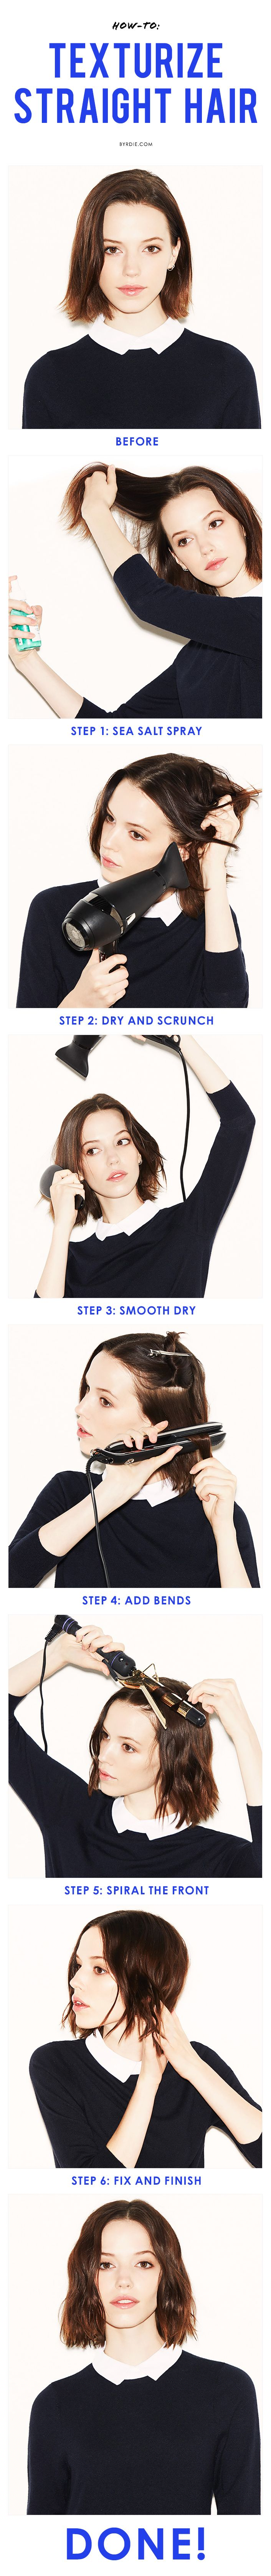 How to give stick-straight hair model-off-duty texture. // #Hair #Tutorial